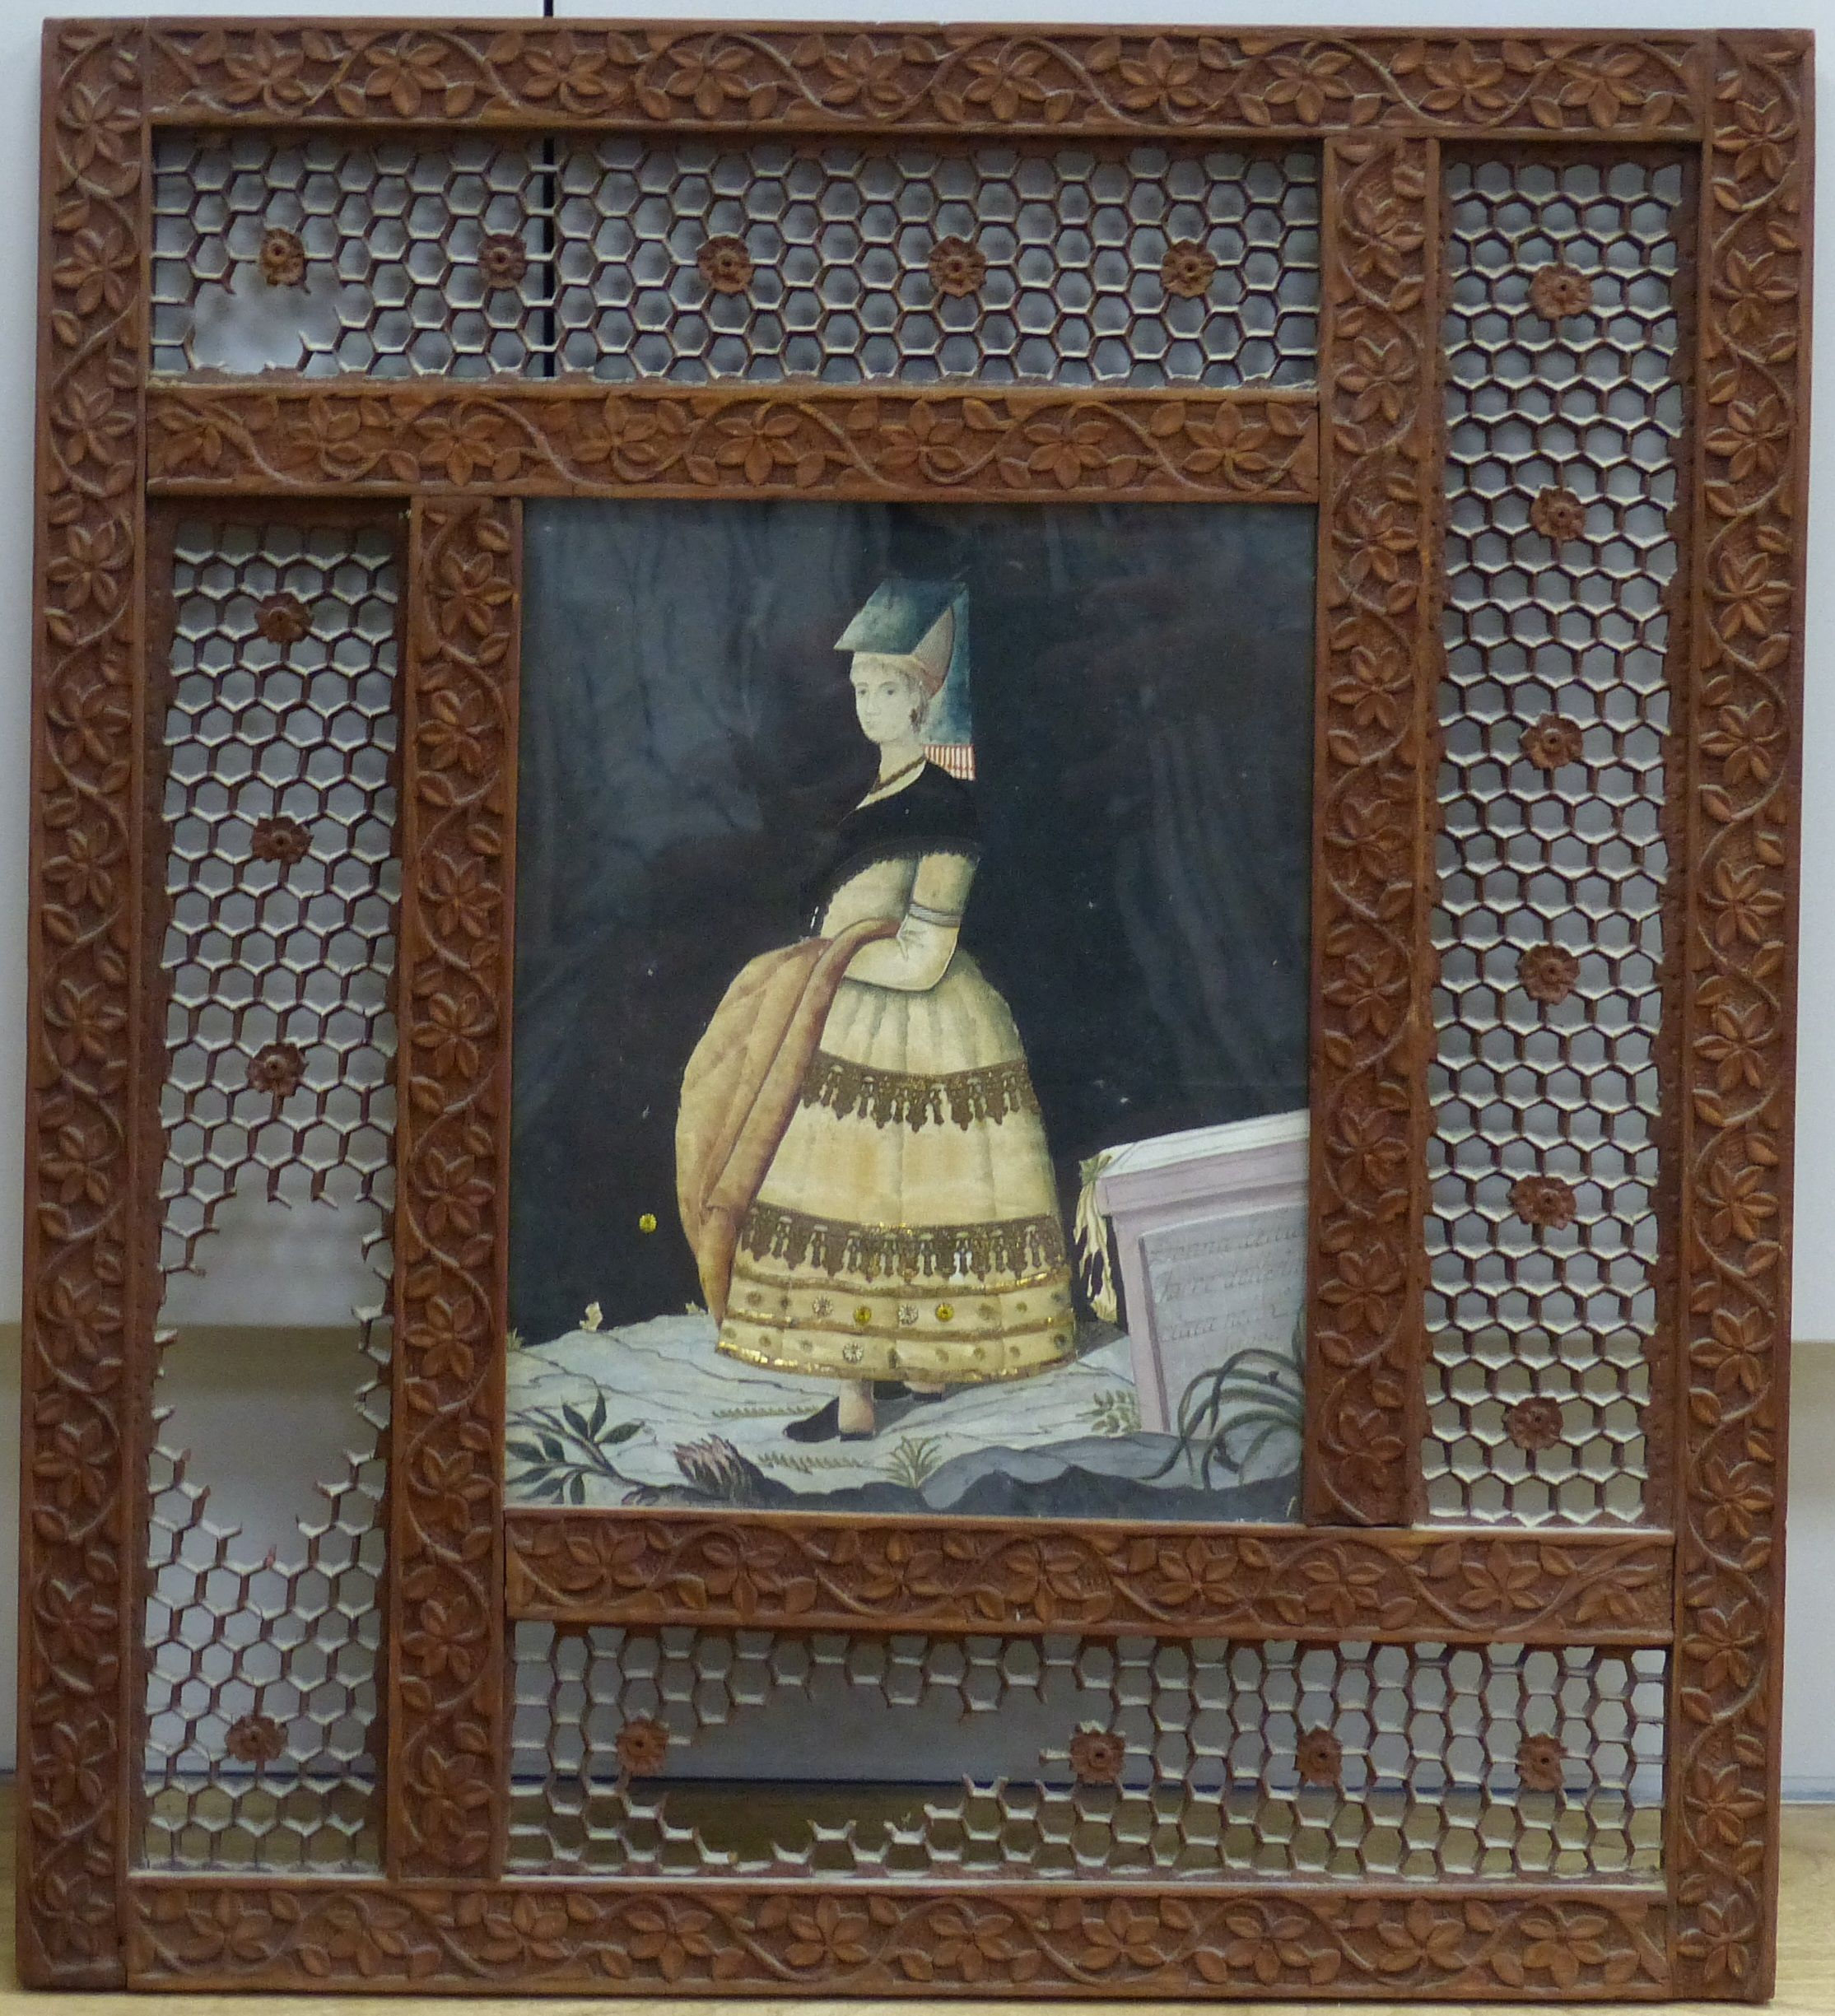 An early 19th century painted silk and gilt metal portraitdepicting a young woman wearing